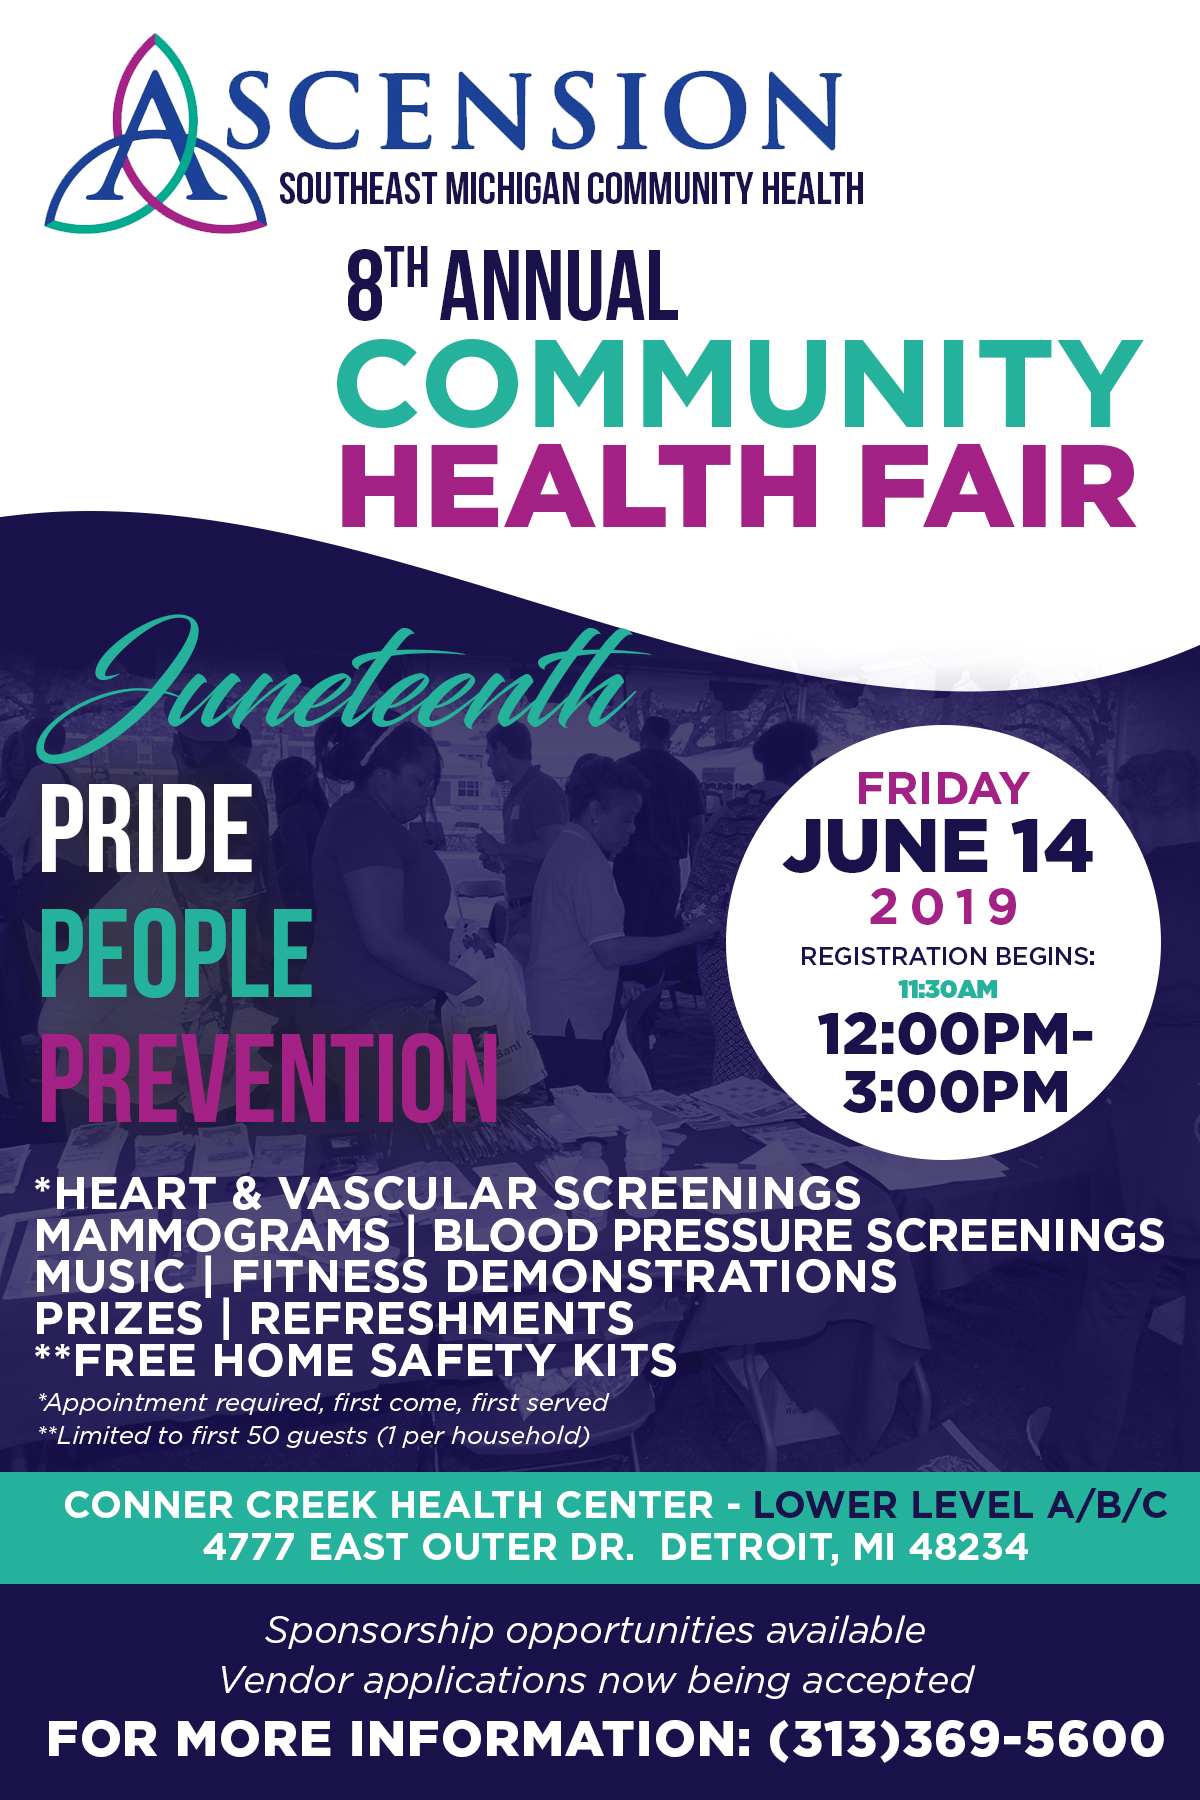 CommunityHealthFair.jpg